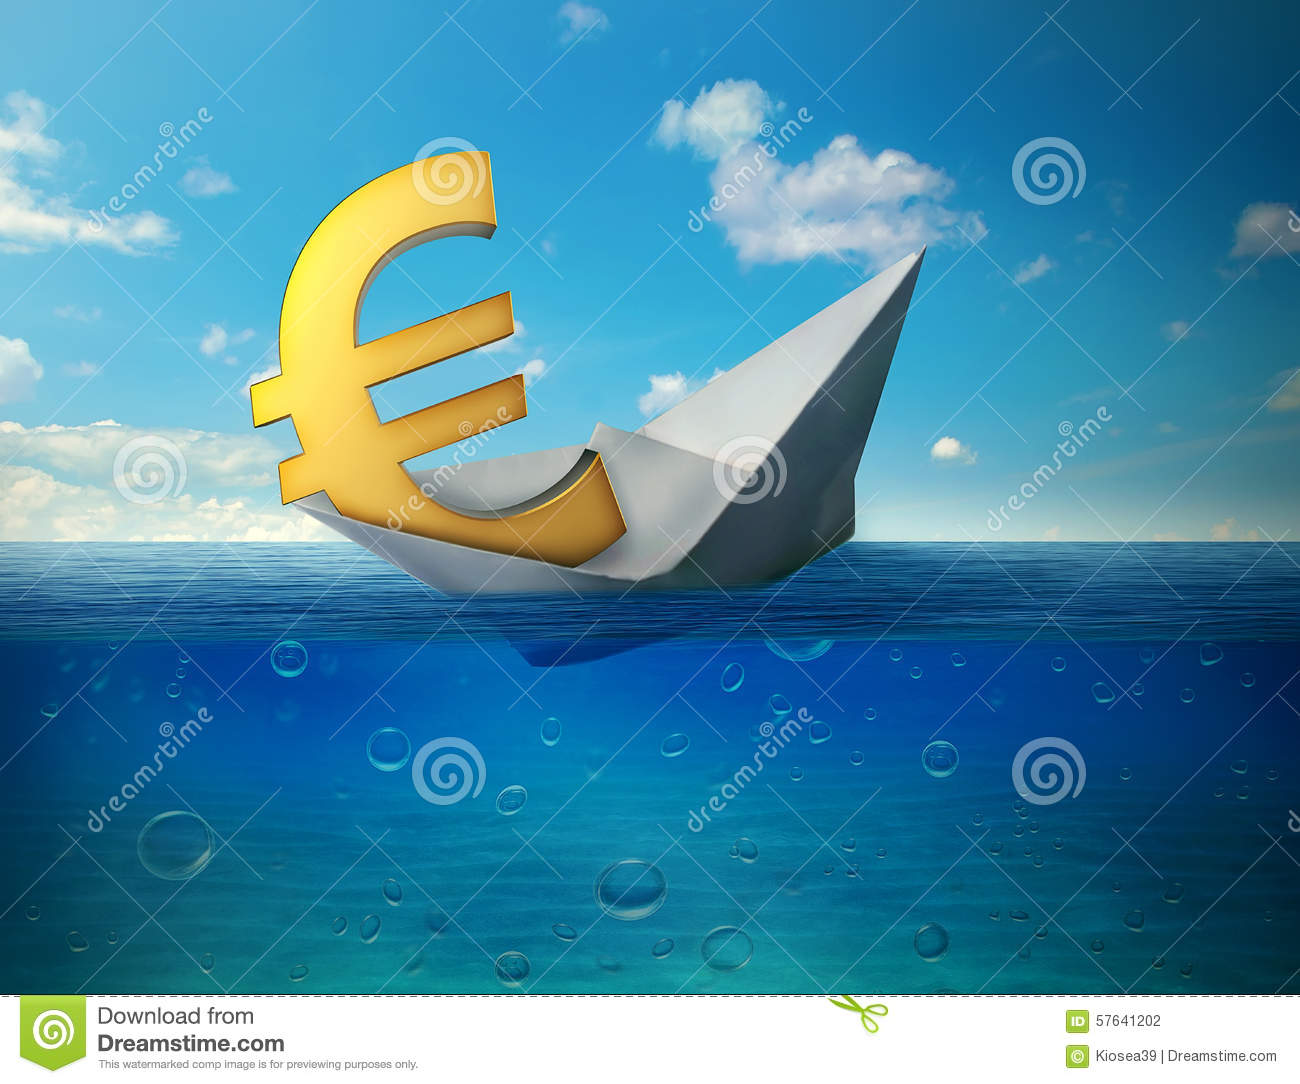 essay memories from a sinking ship 1 what were the reasons for the sinking of the vessels essays and research 1 what were the reasons for the sinking of essay memories from a sinking ship.